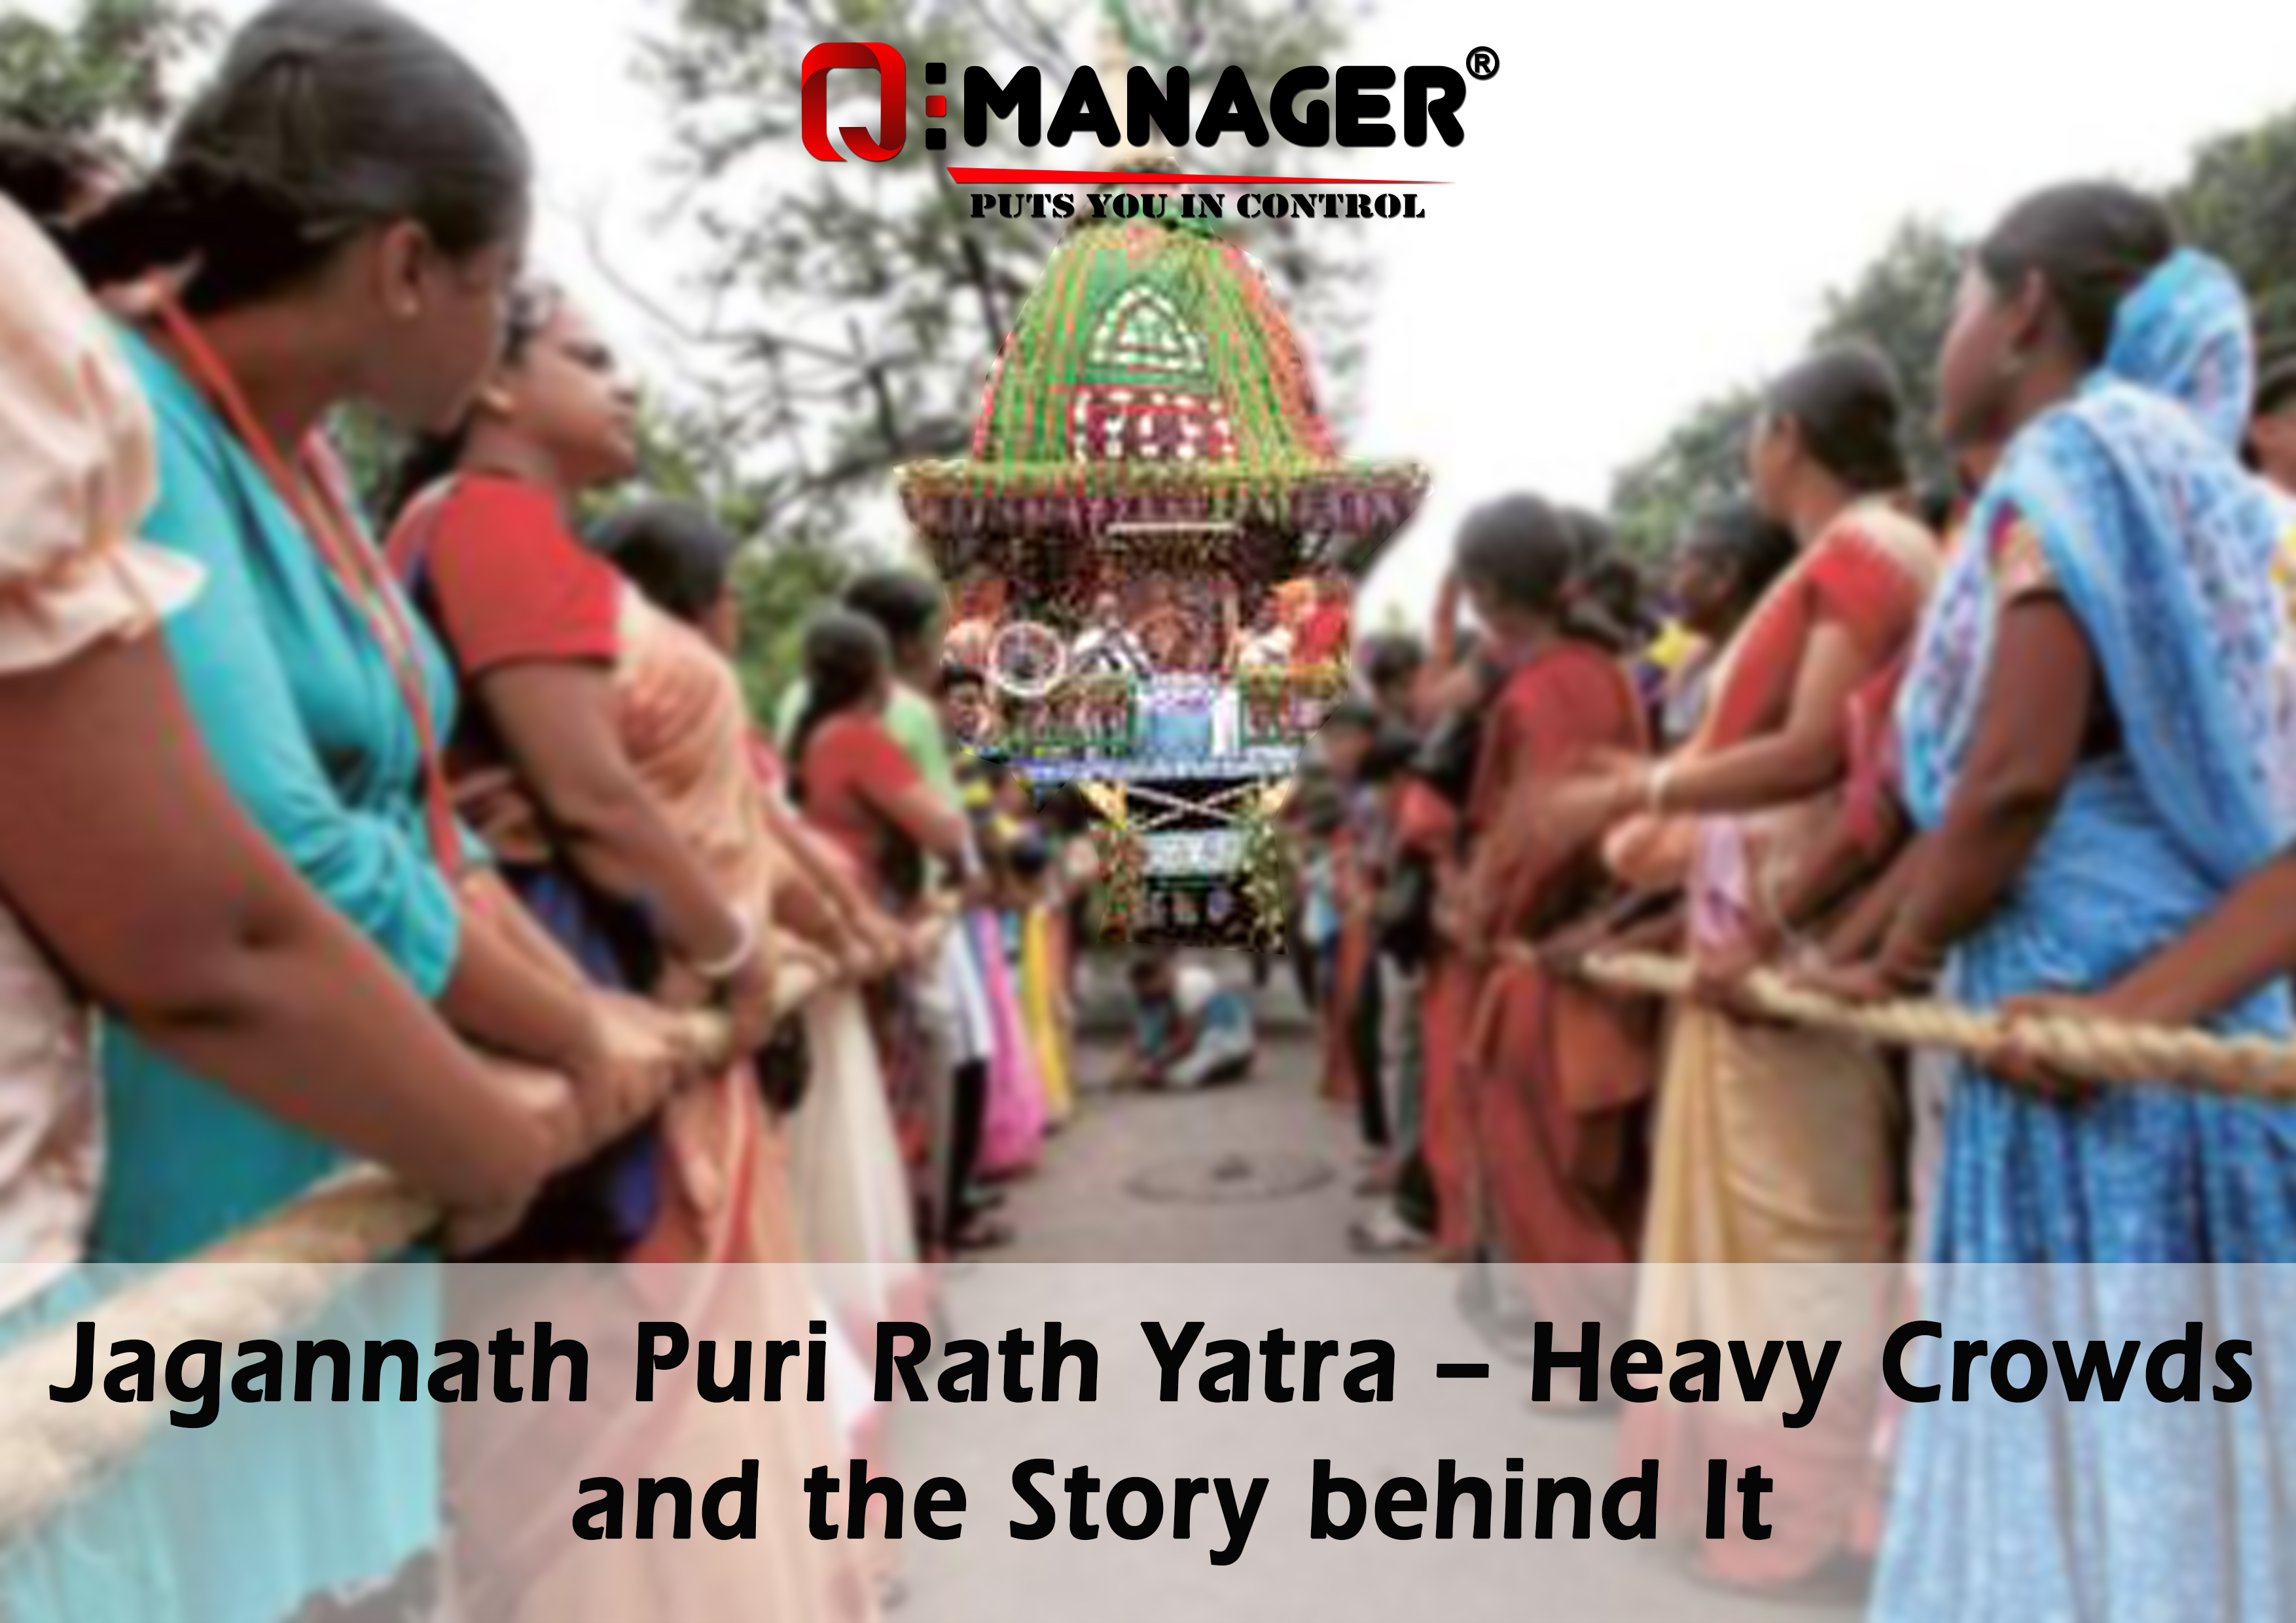 Jagannath Puri Rath Yatra - Heavy Crowds and the Story behind It